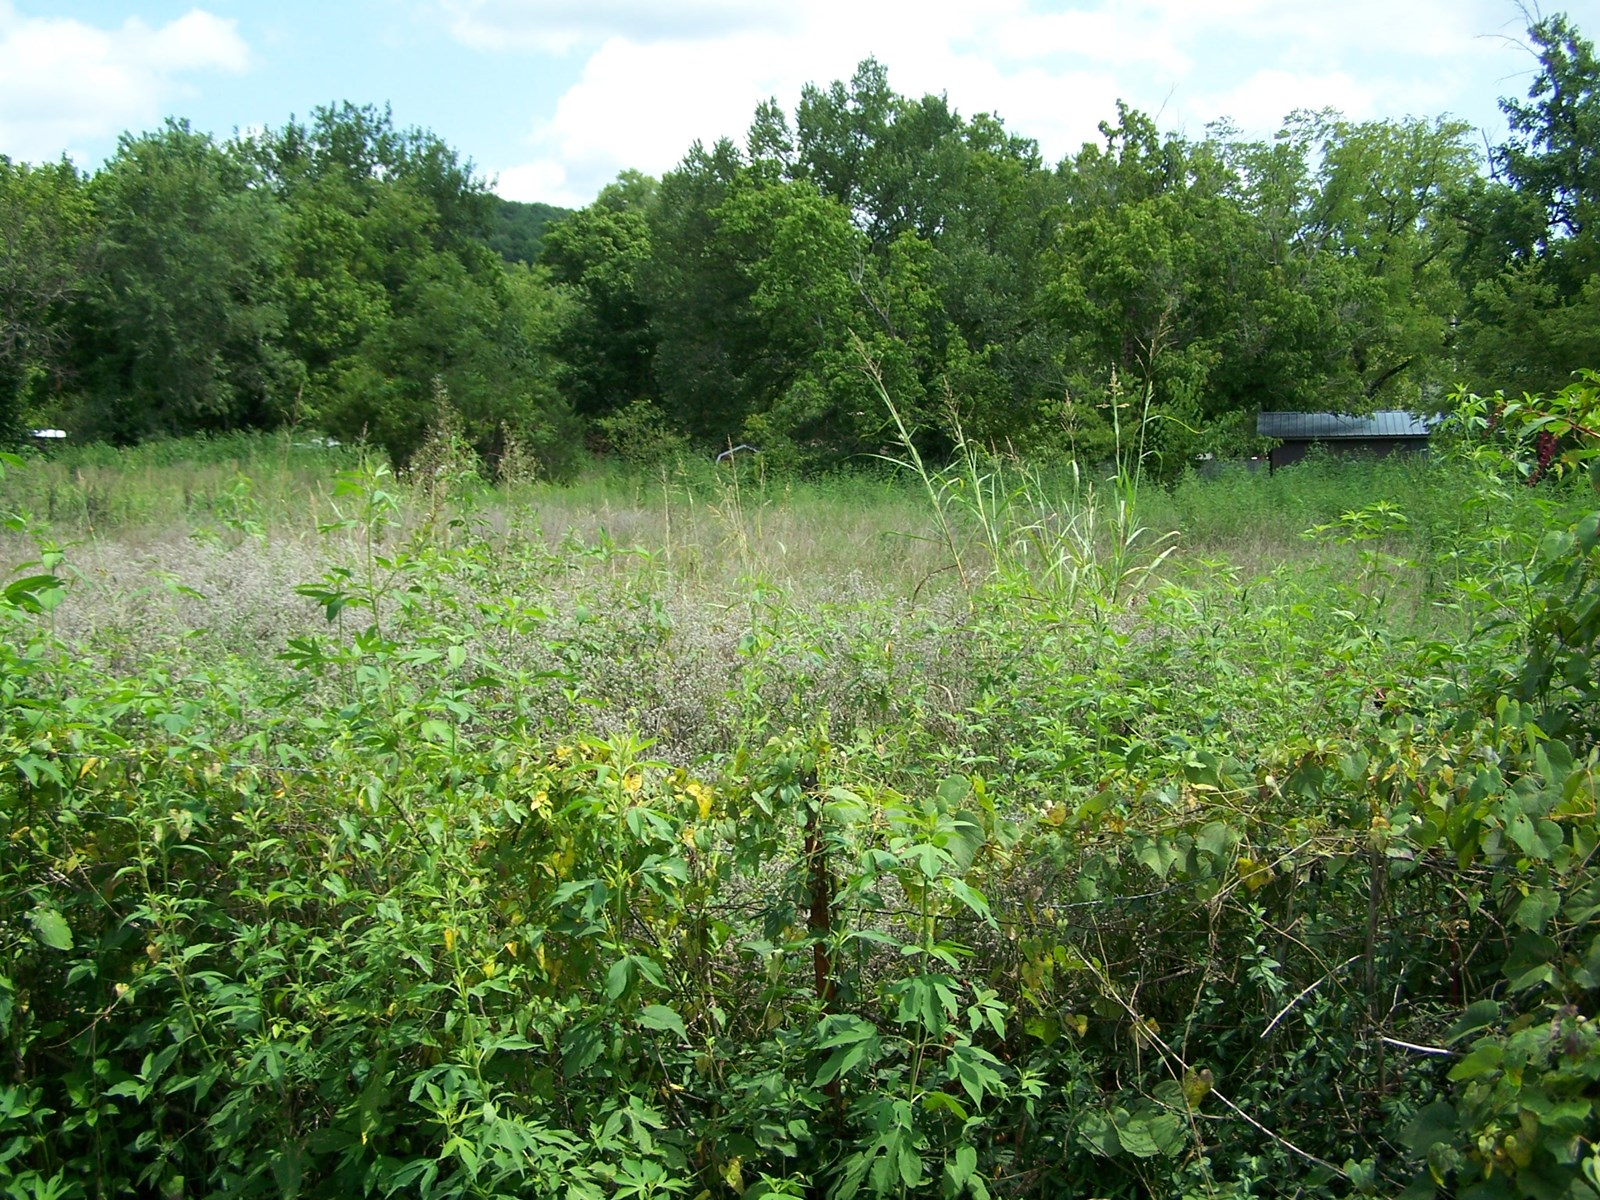 3 lots For Sale Inside City Limits of Leslie, Arkansas